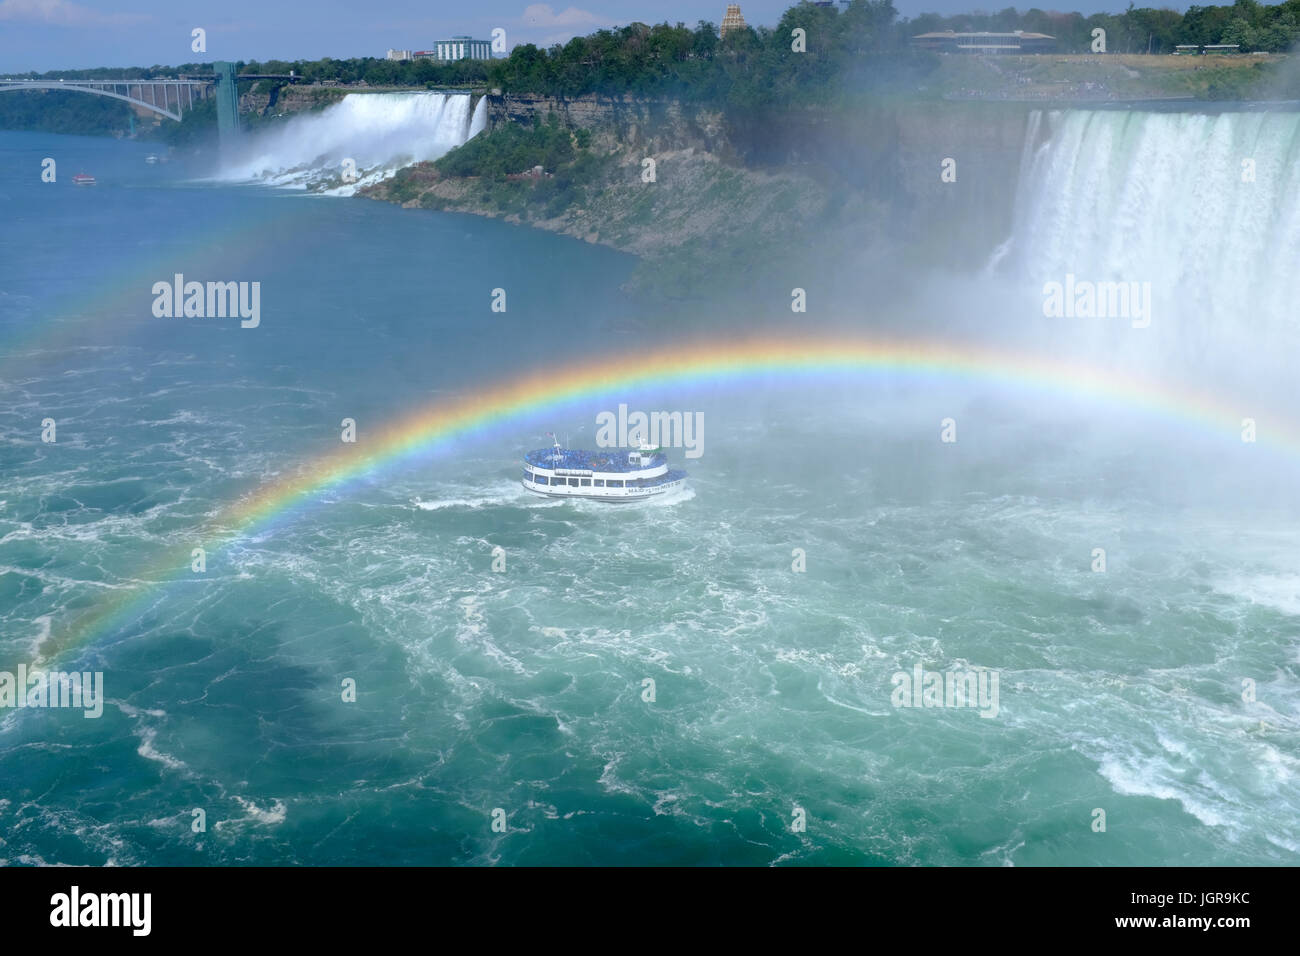 Maid of the Mist heading into the area beneath the Horseshoe Falls of Niagara Falls, with a heavy mist and two rainbows - Stock Image